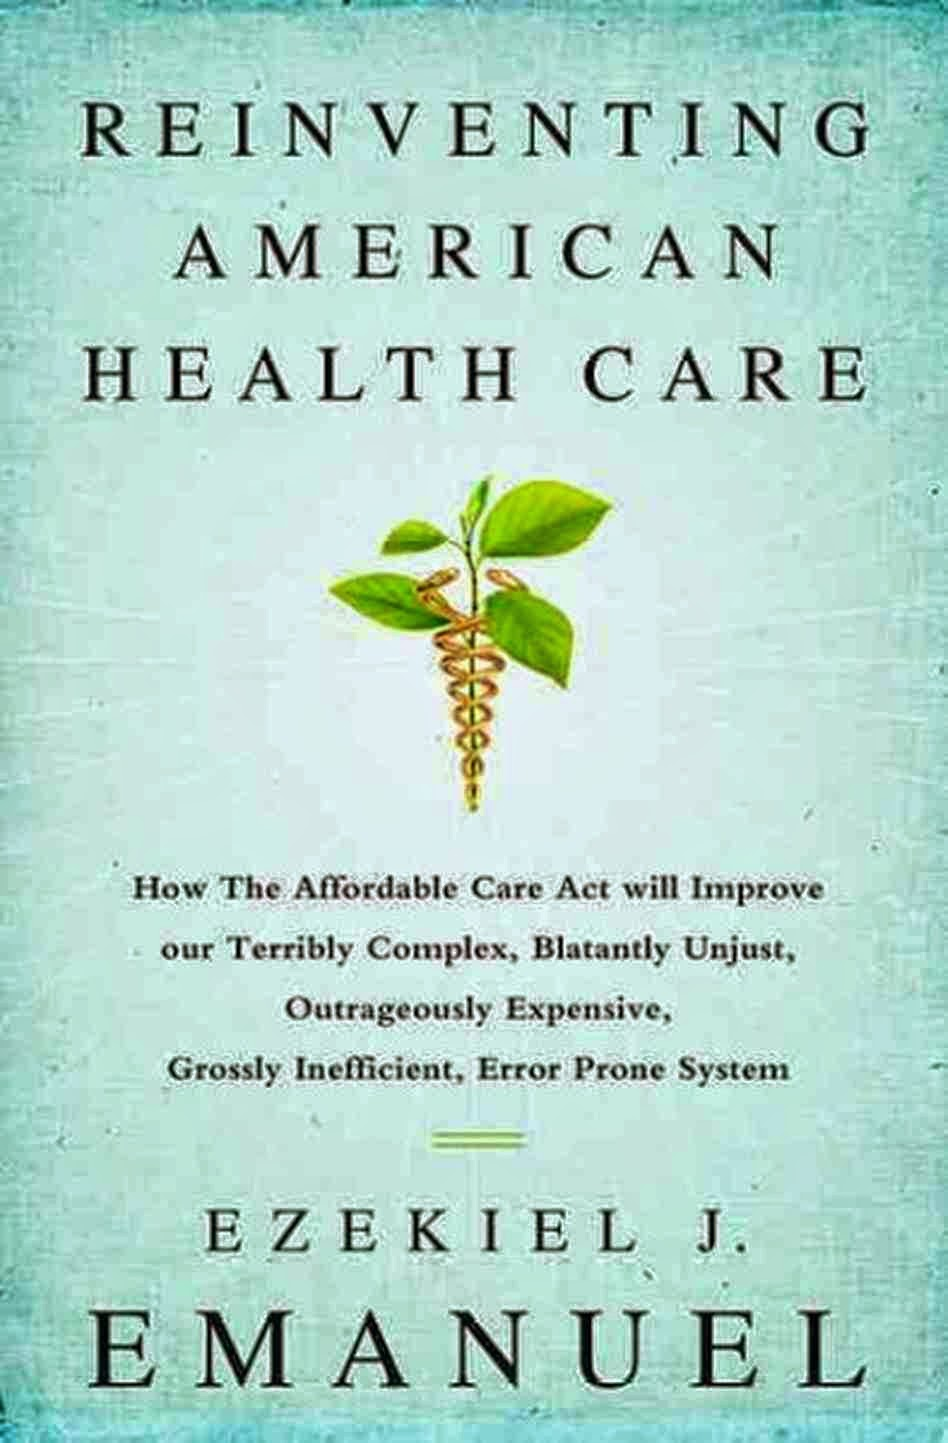 Healthcare Book Club to The Cthpp Book Club